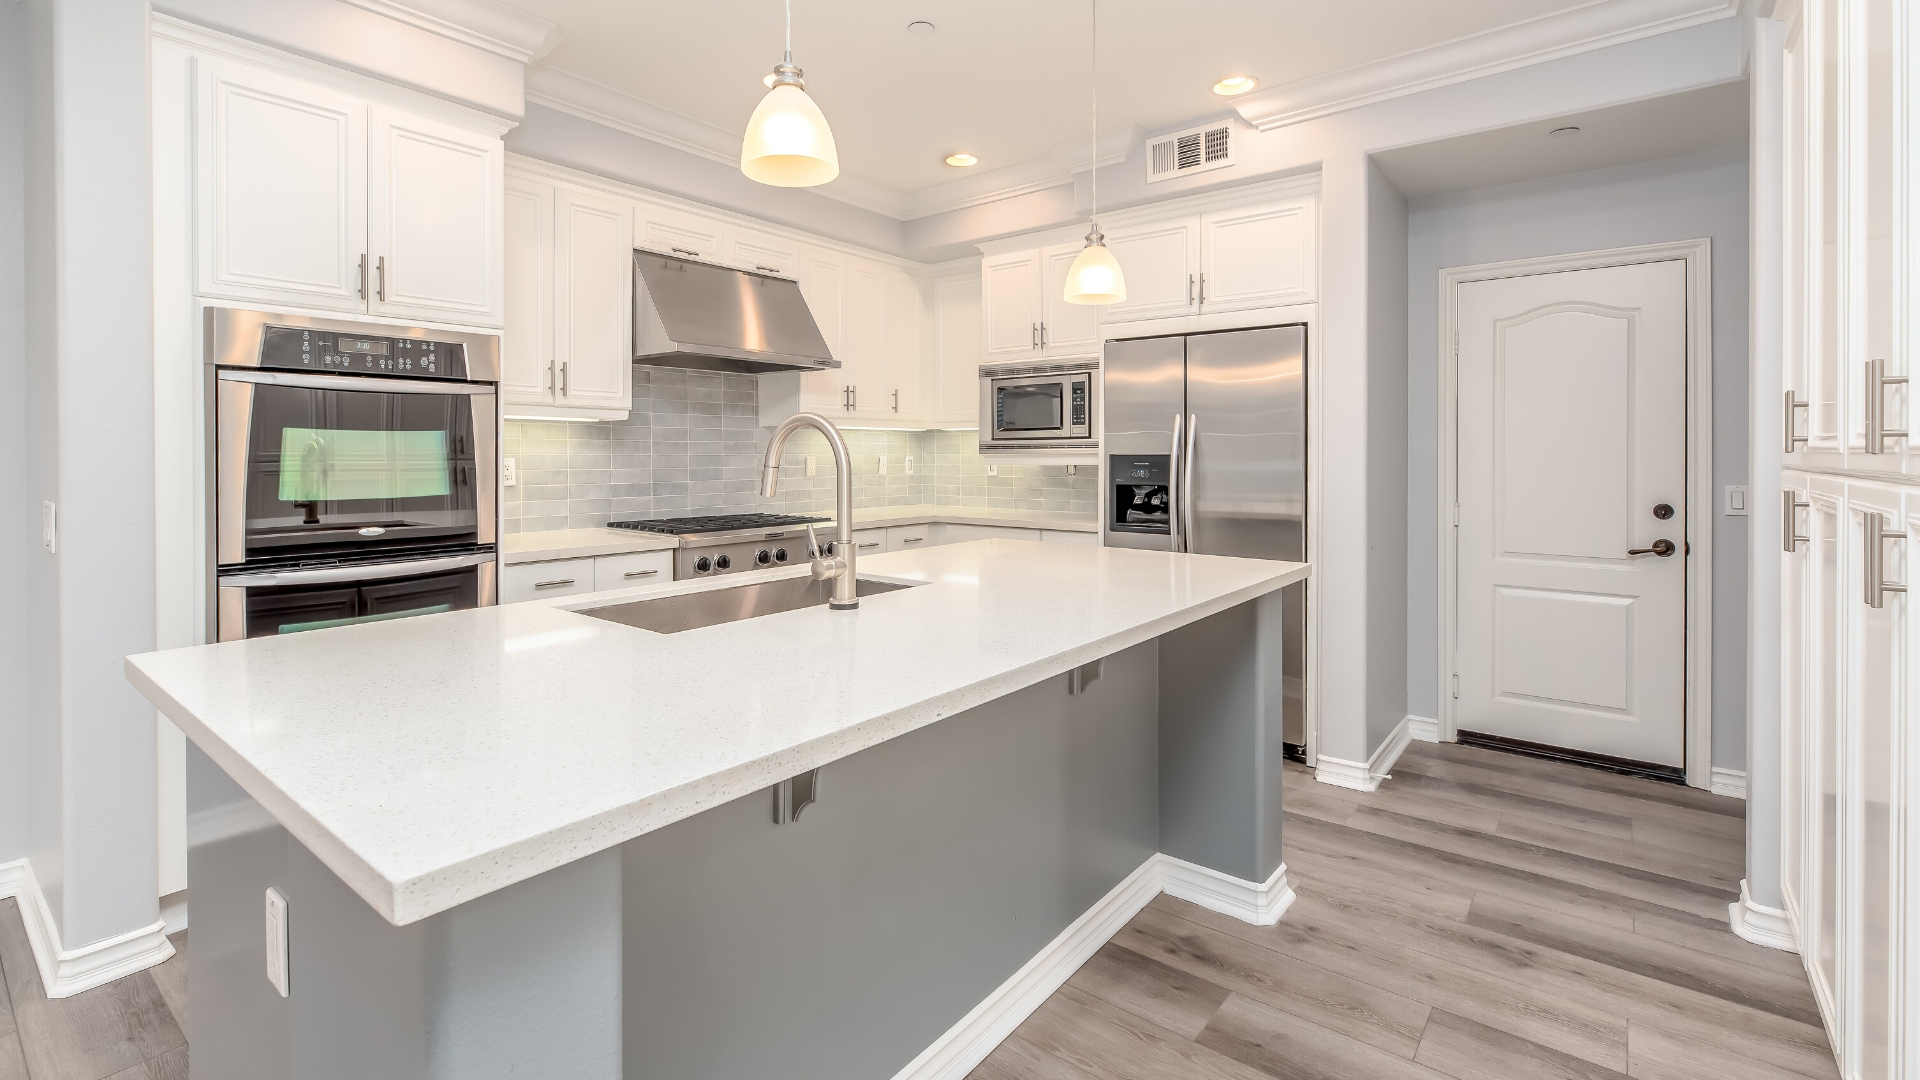 pros and cons of cabinet refacing vs kitchen remodeling